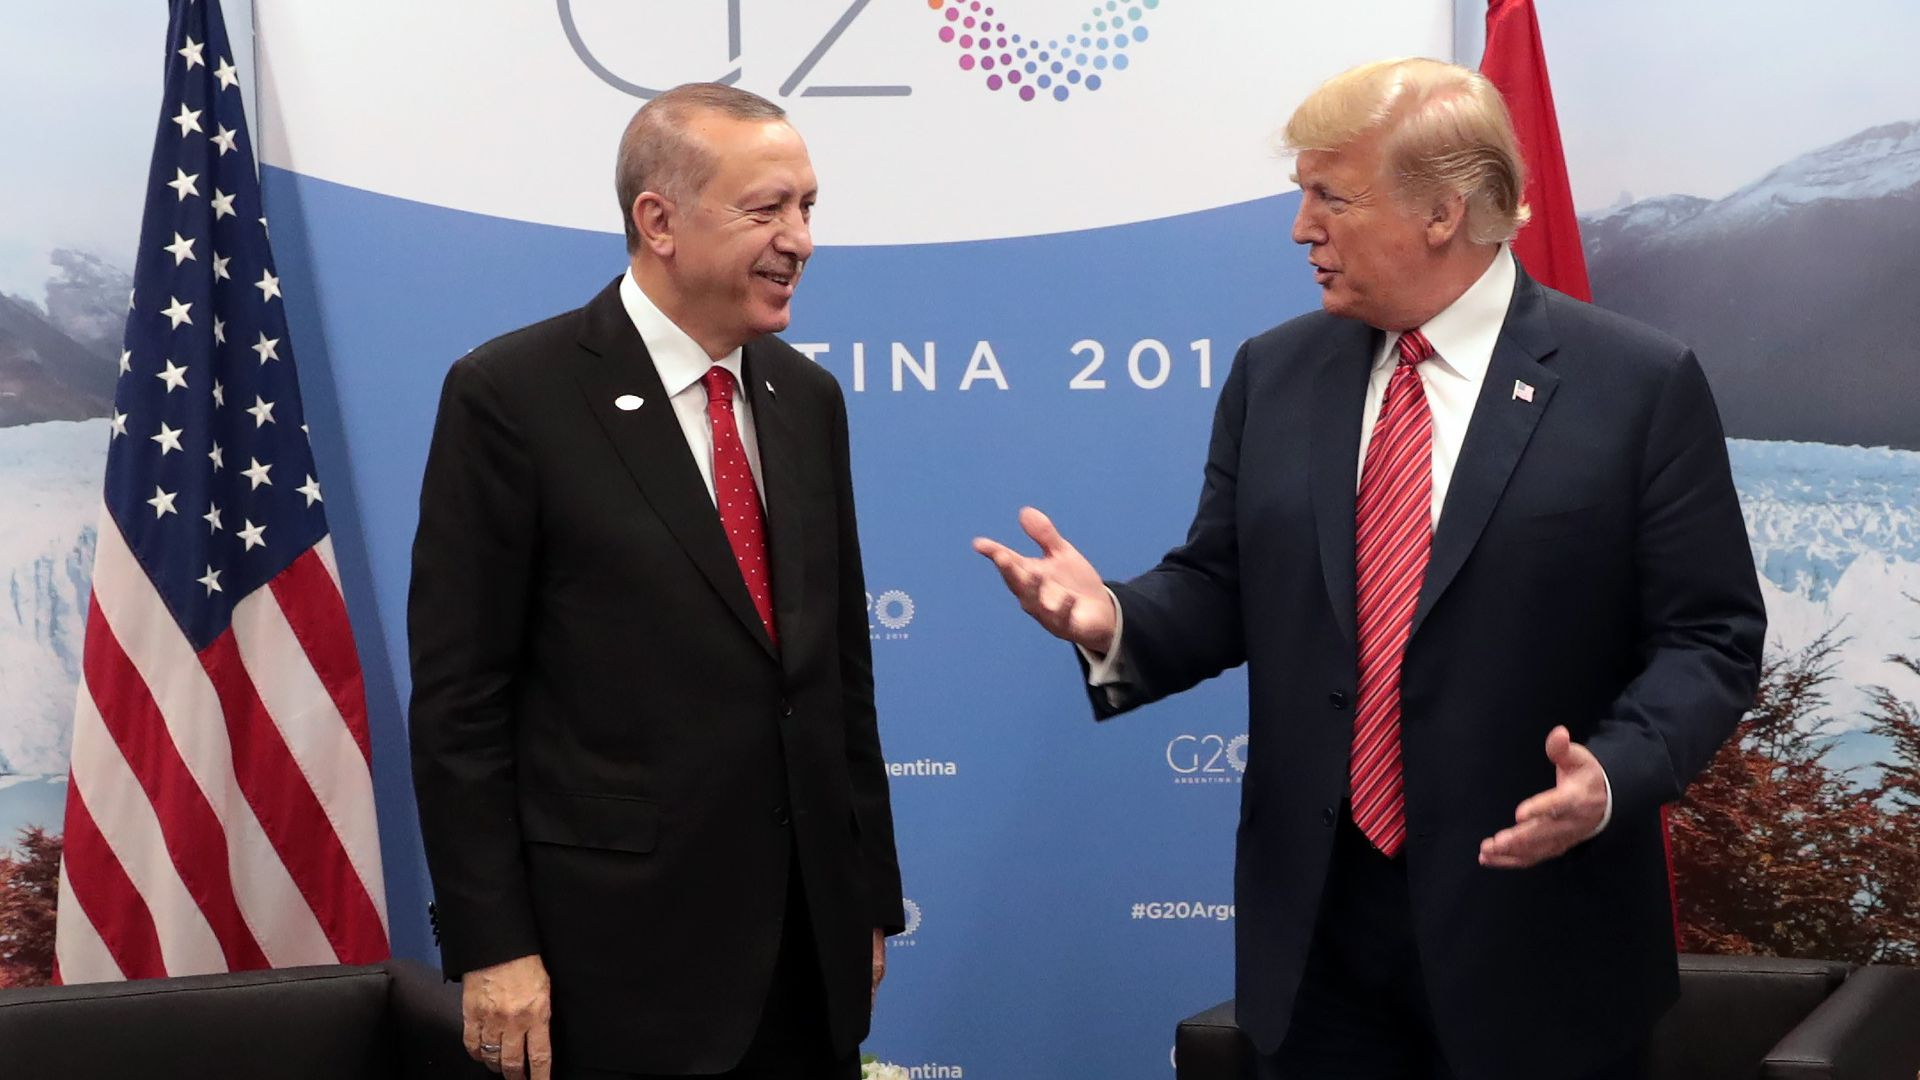 Turkish president with Donald Trump at g20 summit